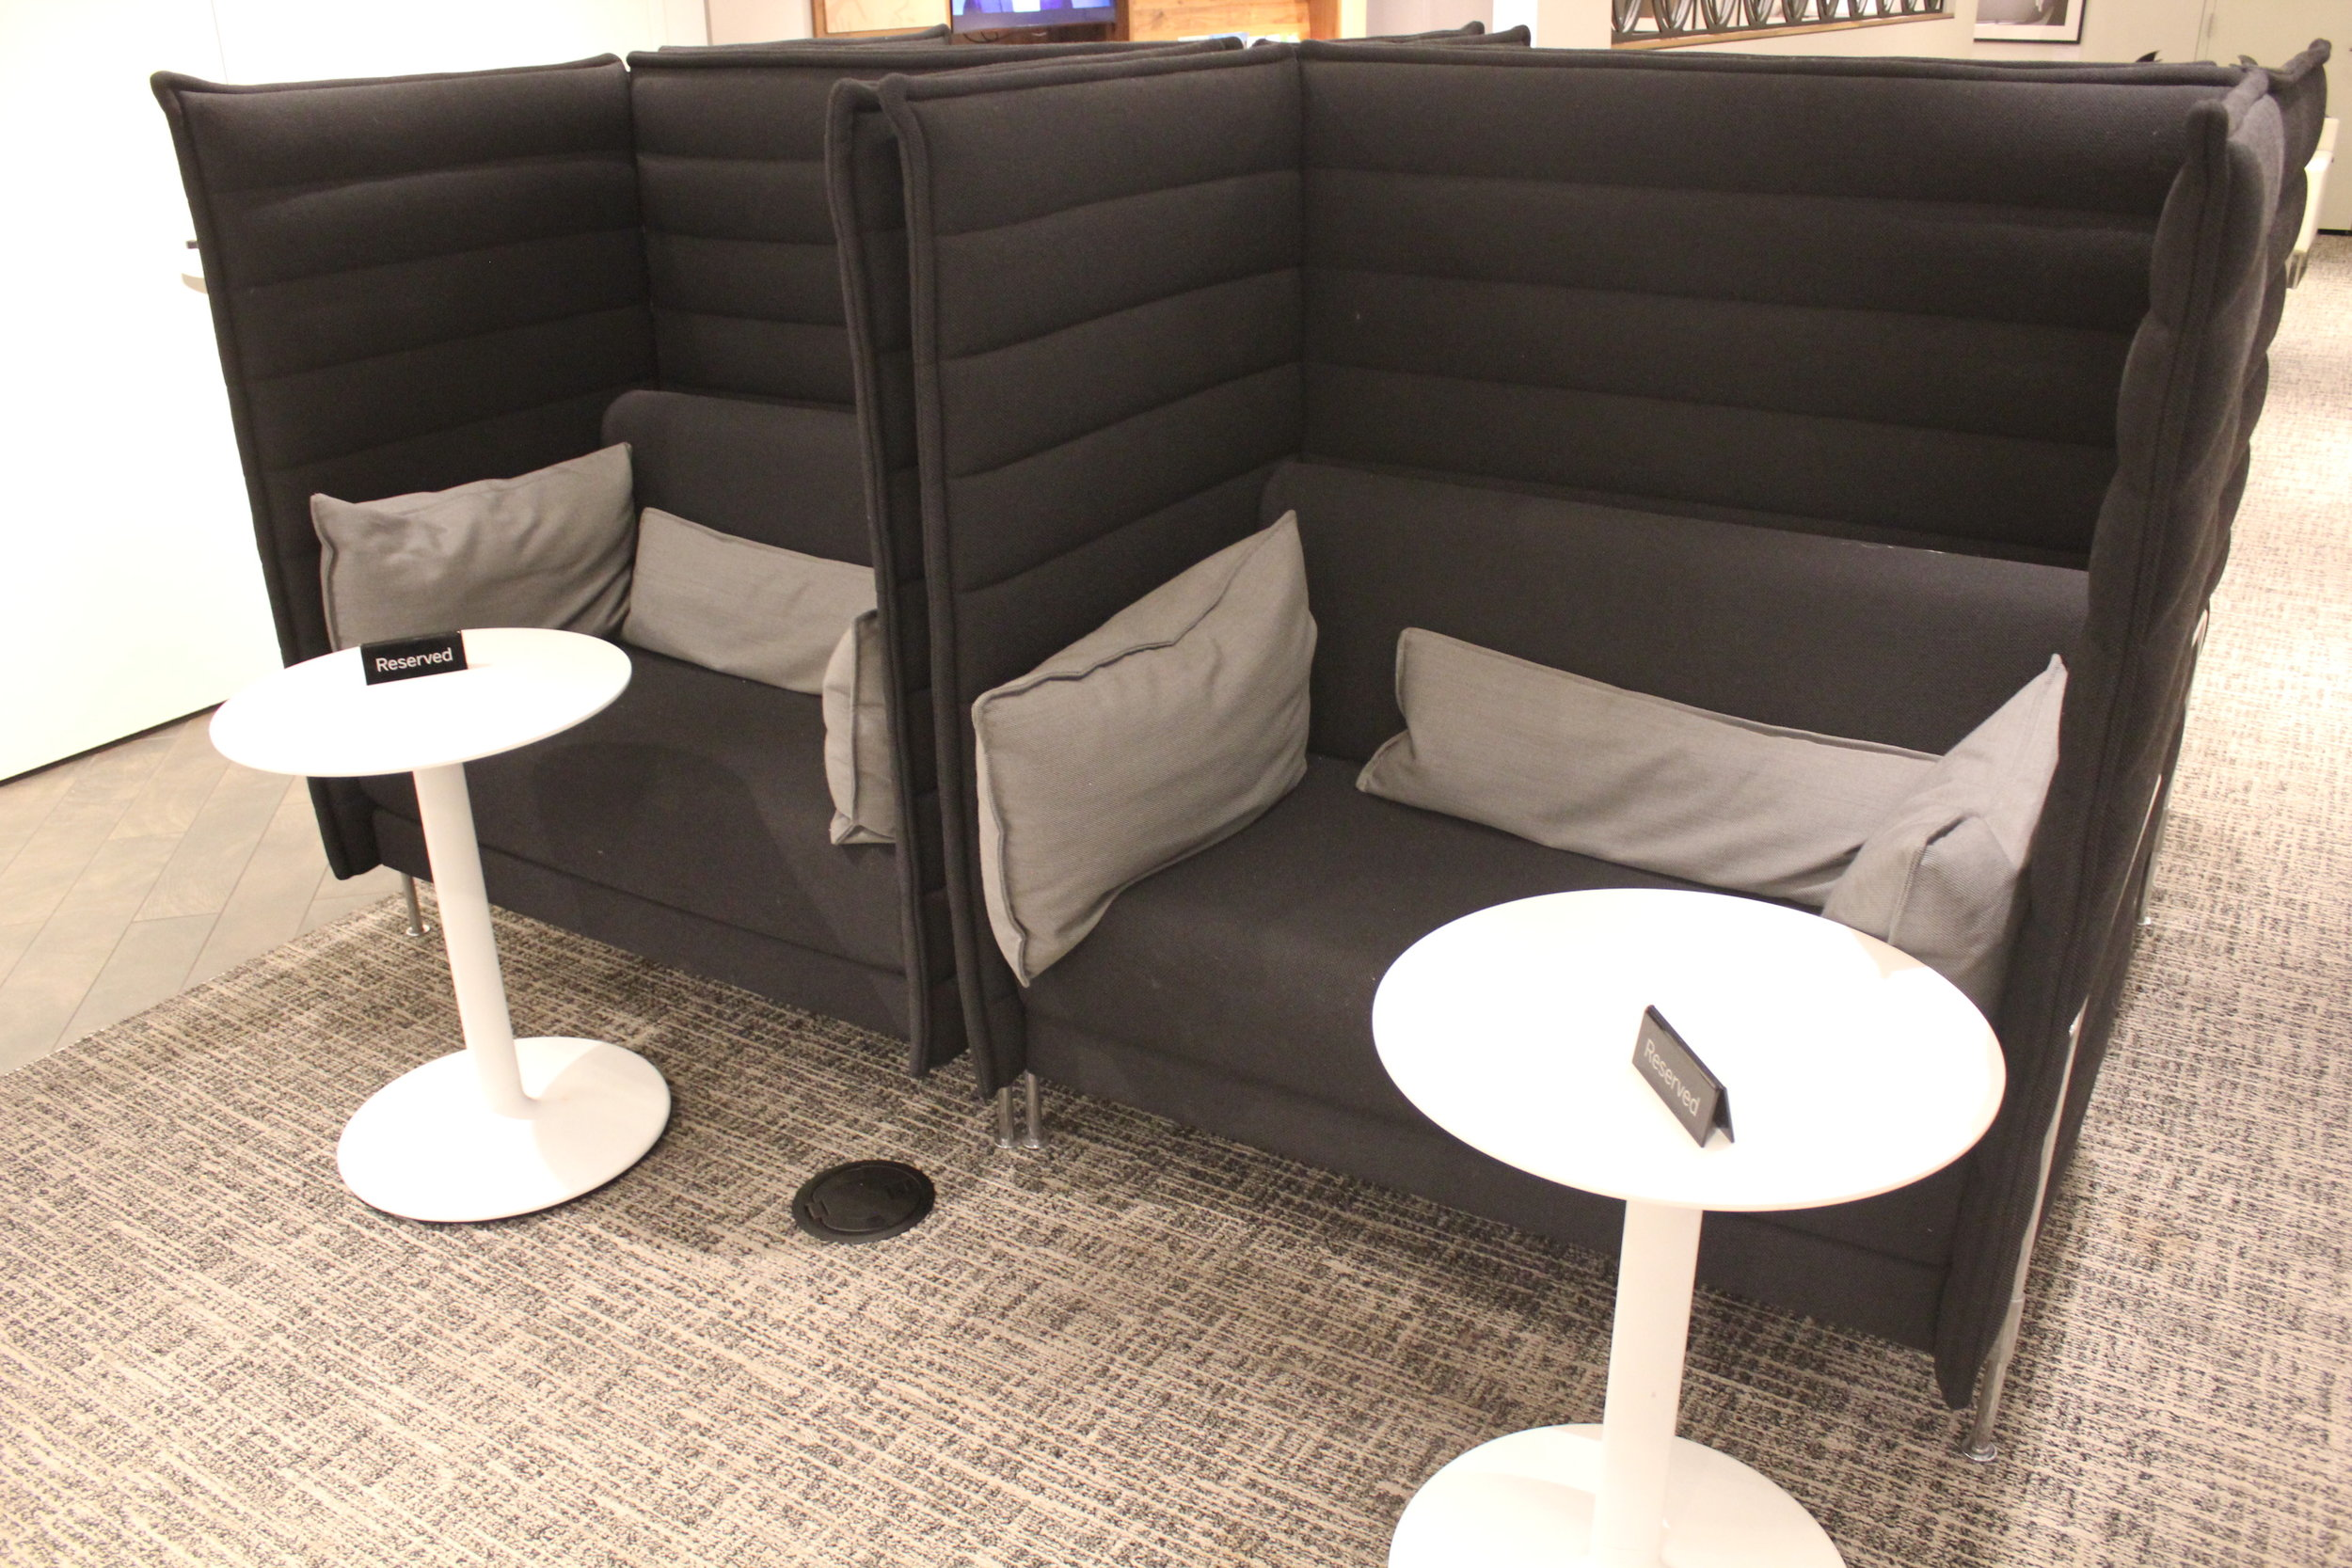 Centurion Lounge Seattle – Booth seats